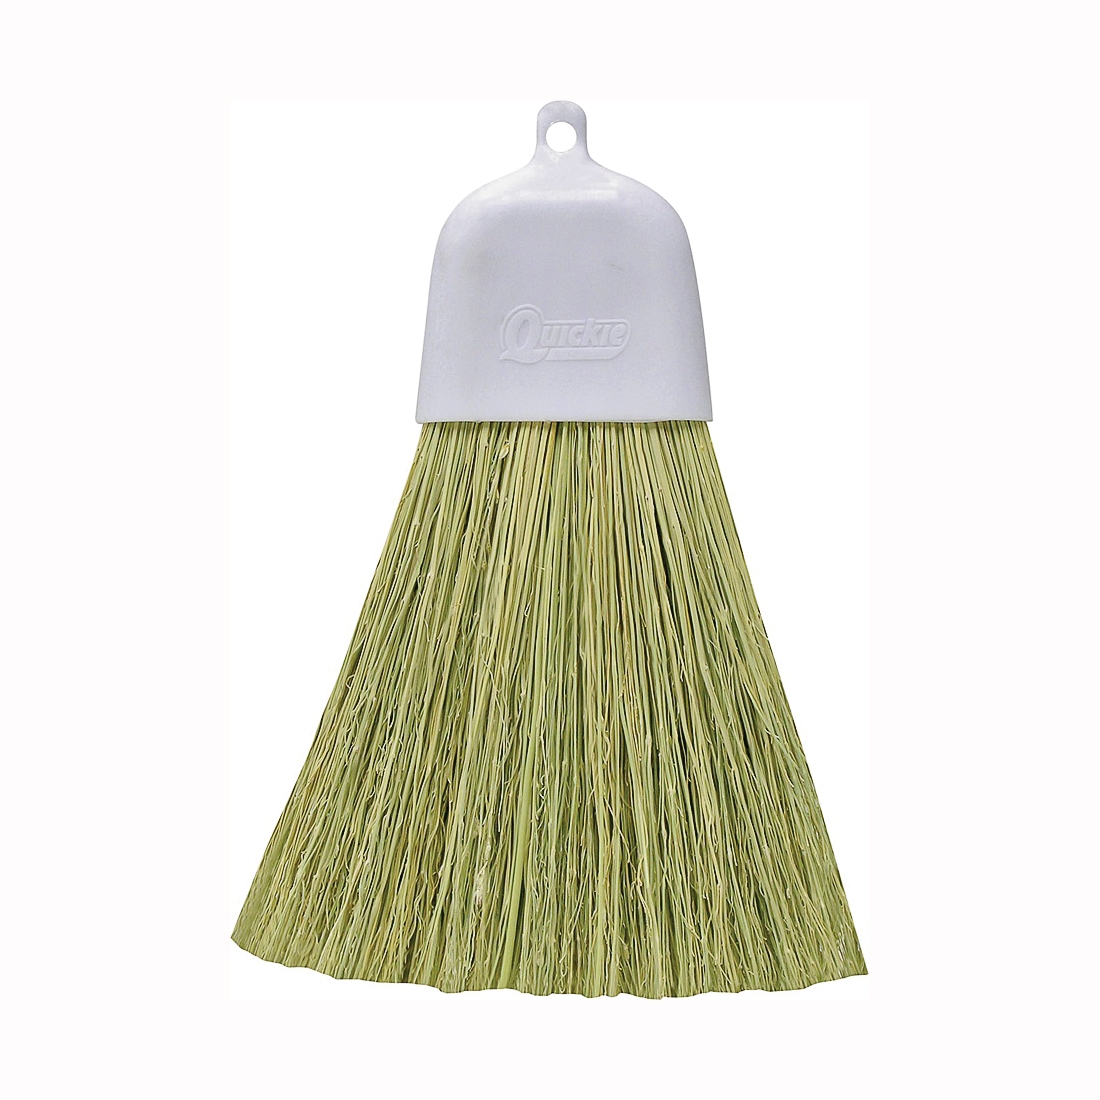 Picture of Quickie 405CQ Whisk Broom, Fiber Bristle, 10-1/2 in OAL, Plastic Handle